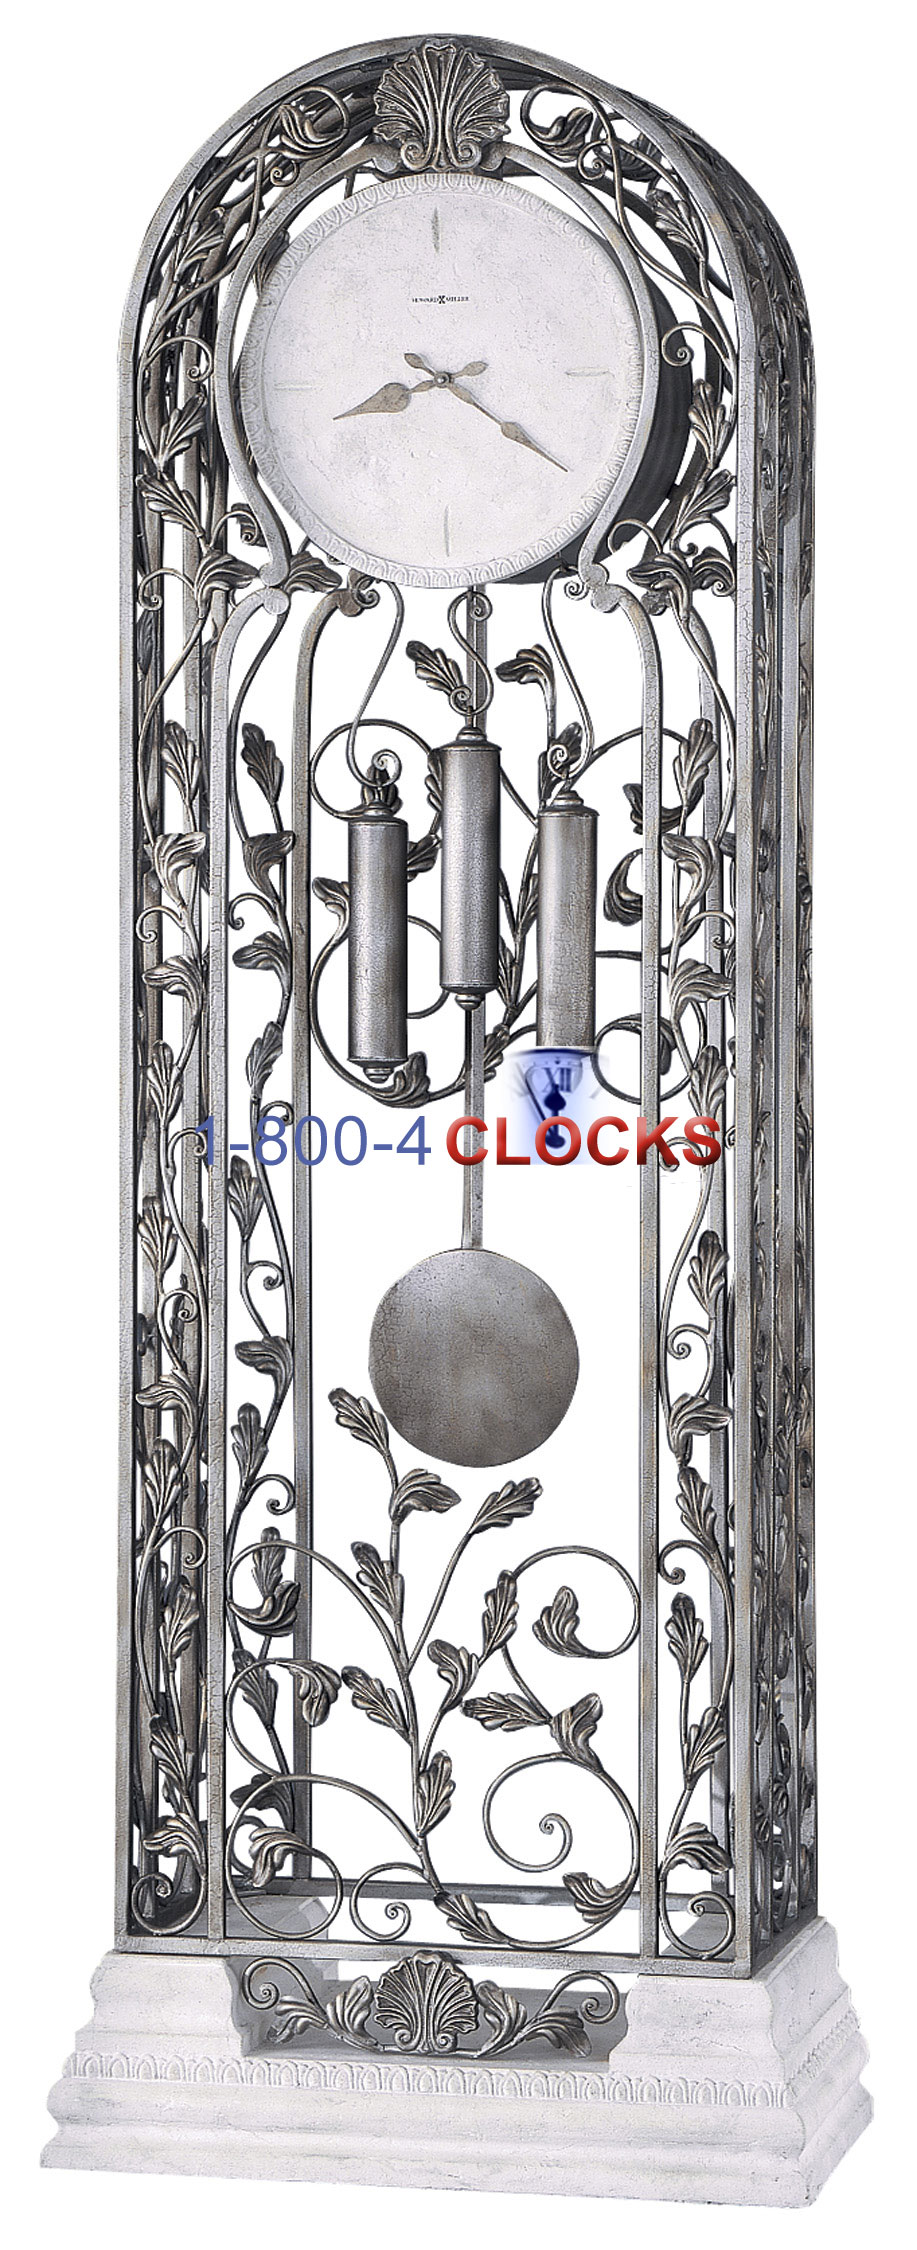 Howard Miller Trevisso Grandfather Clock At 1 800 4clocks Com